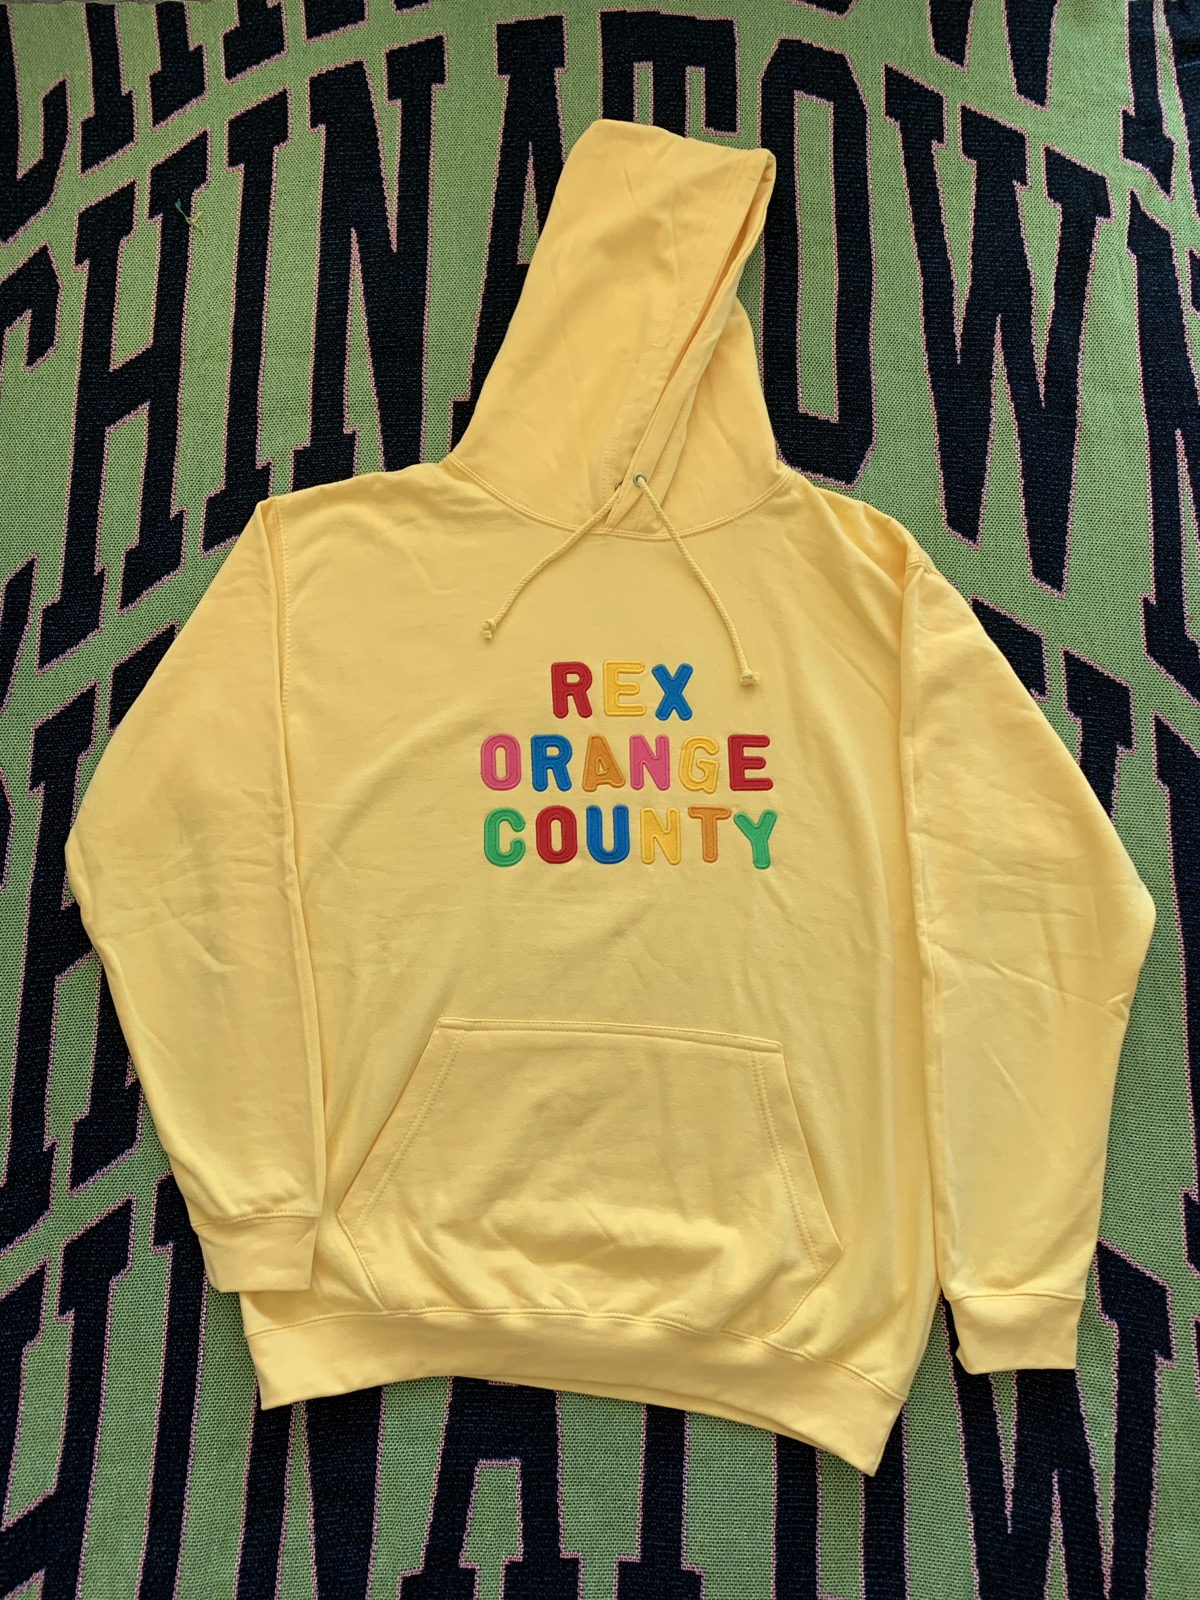 Rex Orange County Canary Yellow Hoodie